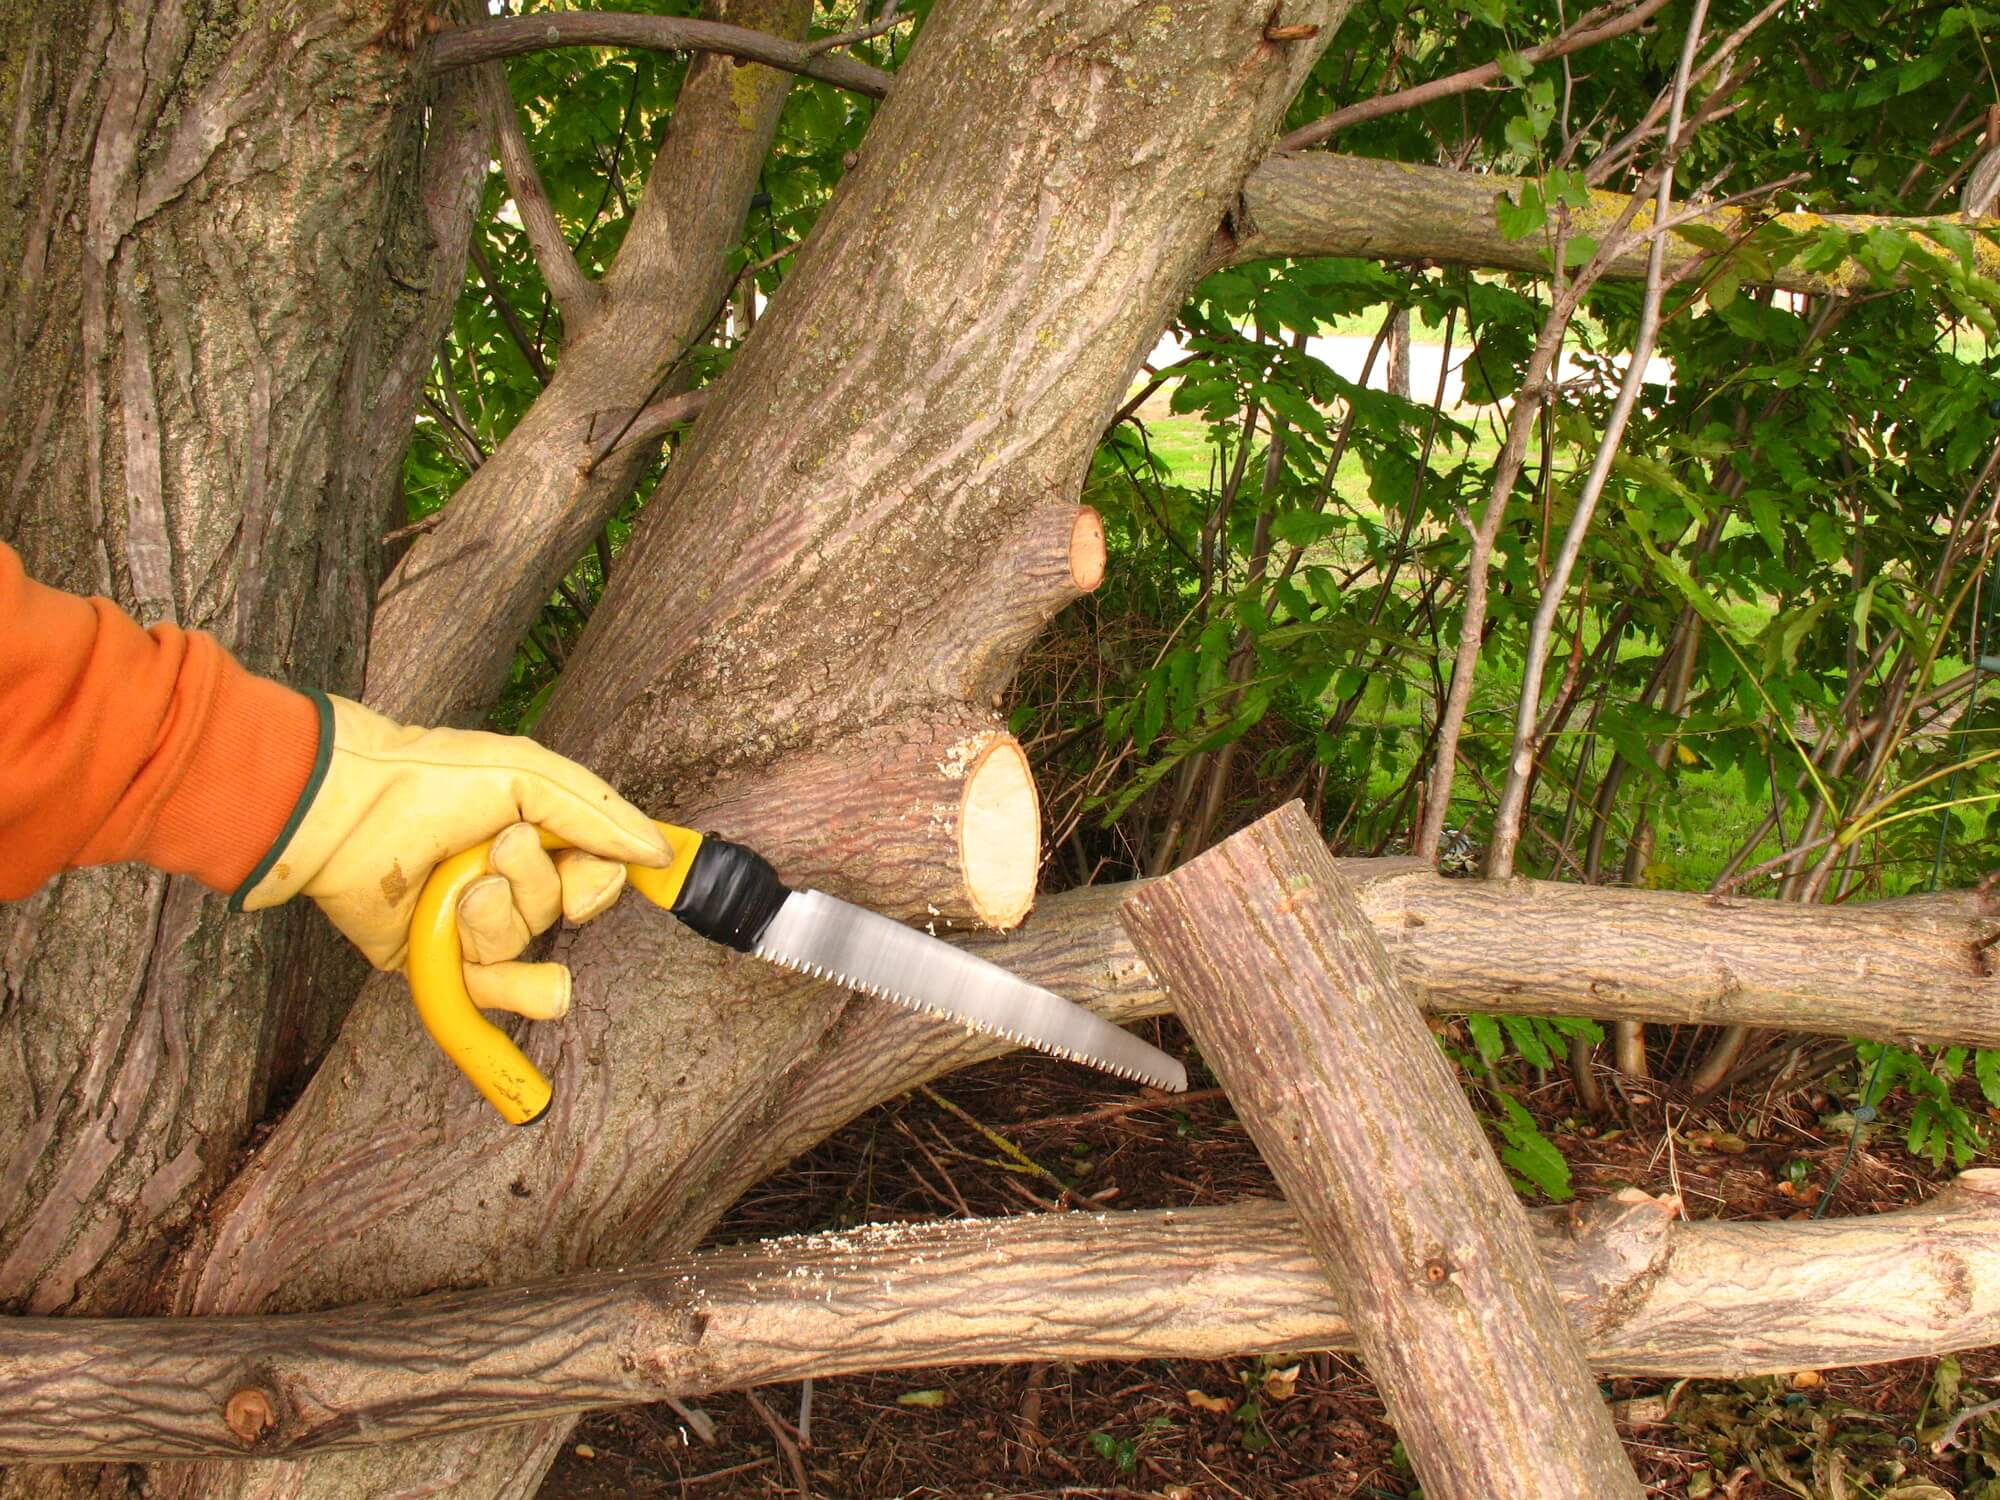 mandeville tree pruning services - Big Easy Tree Removal3